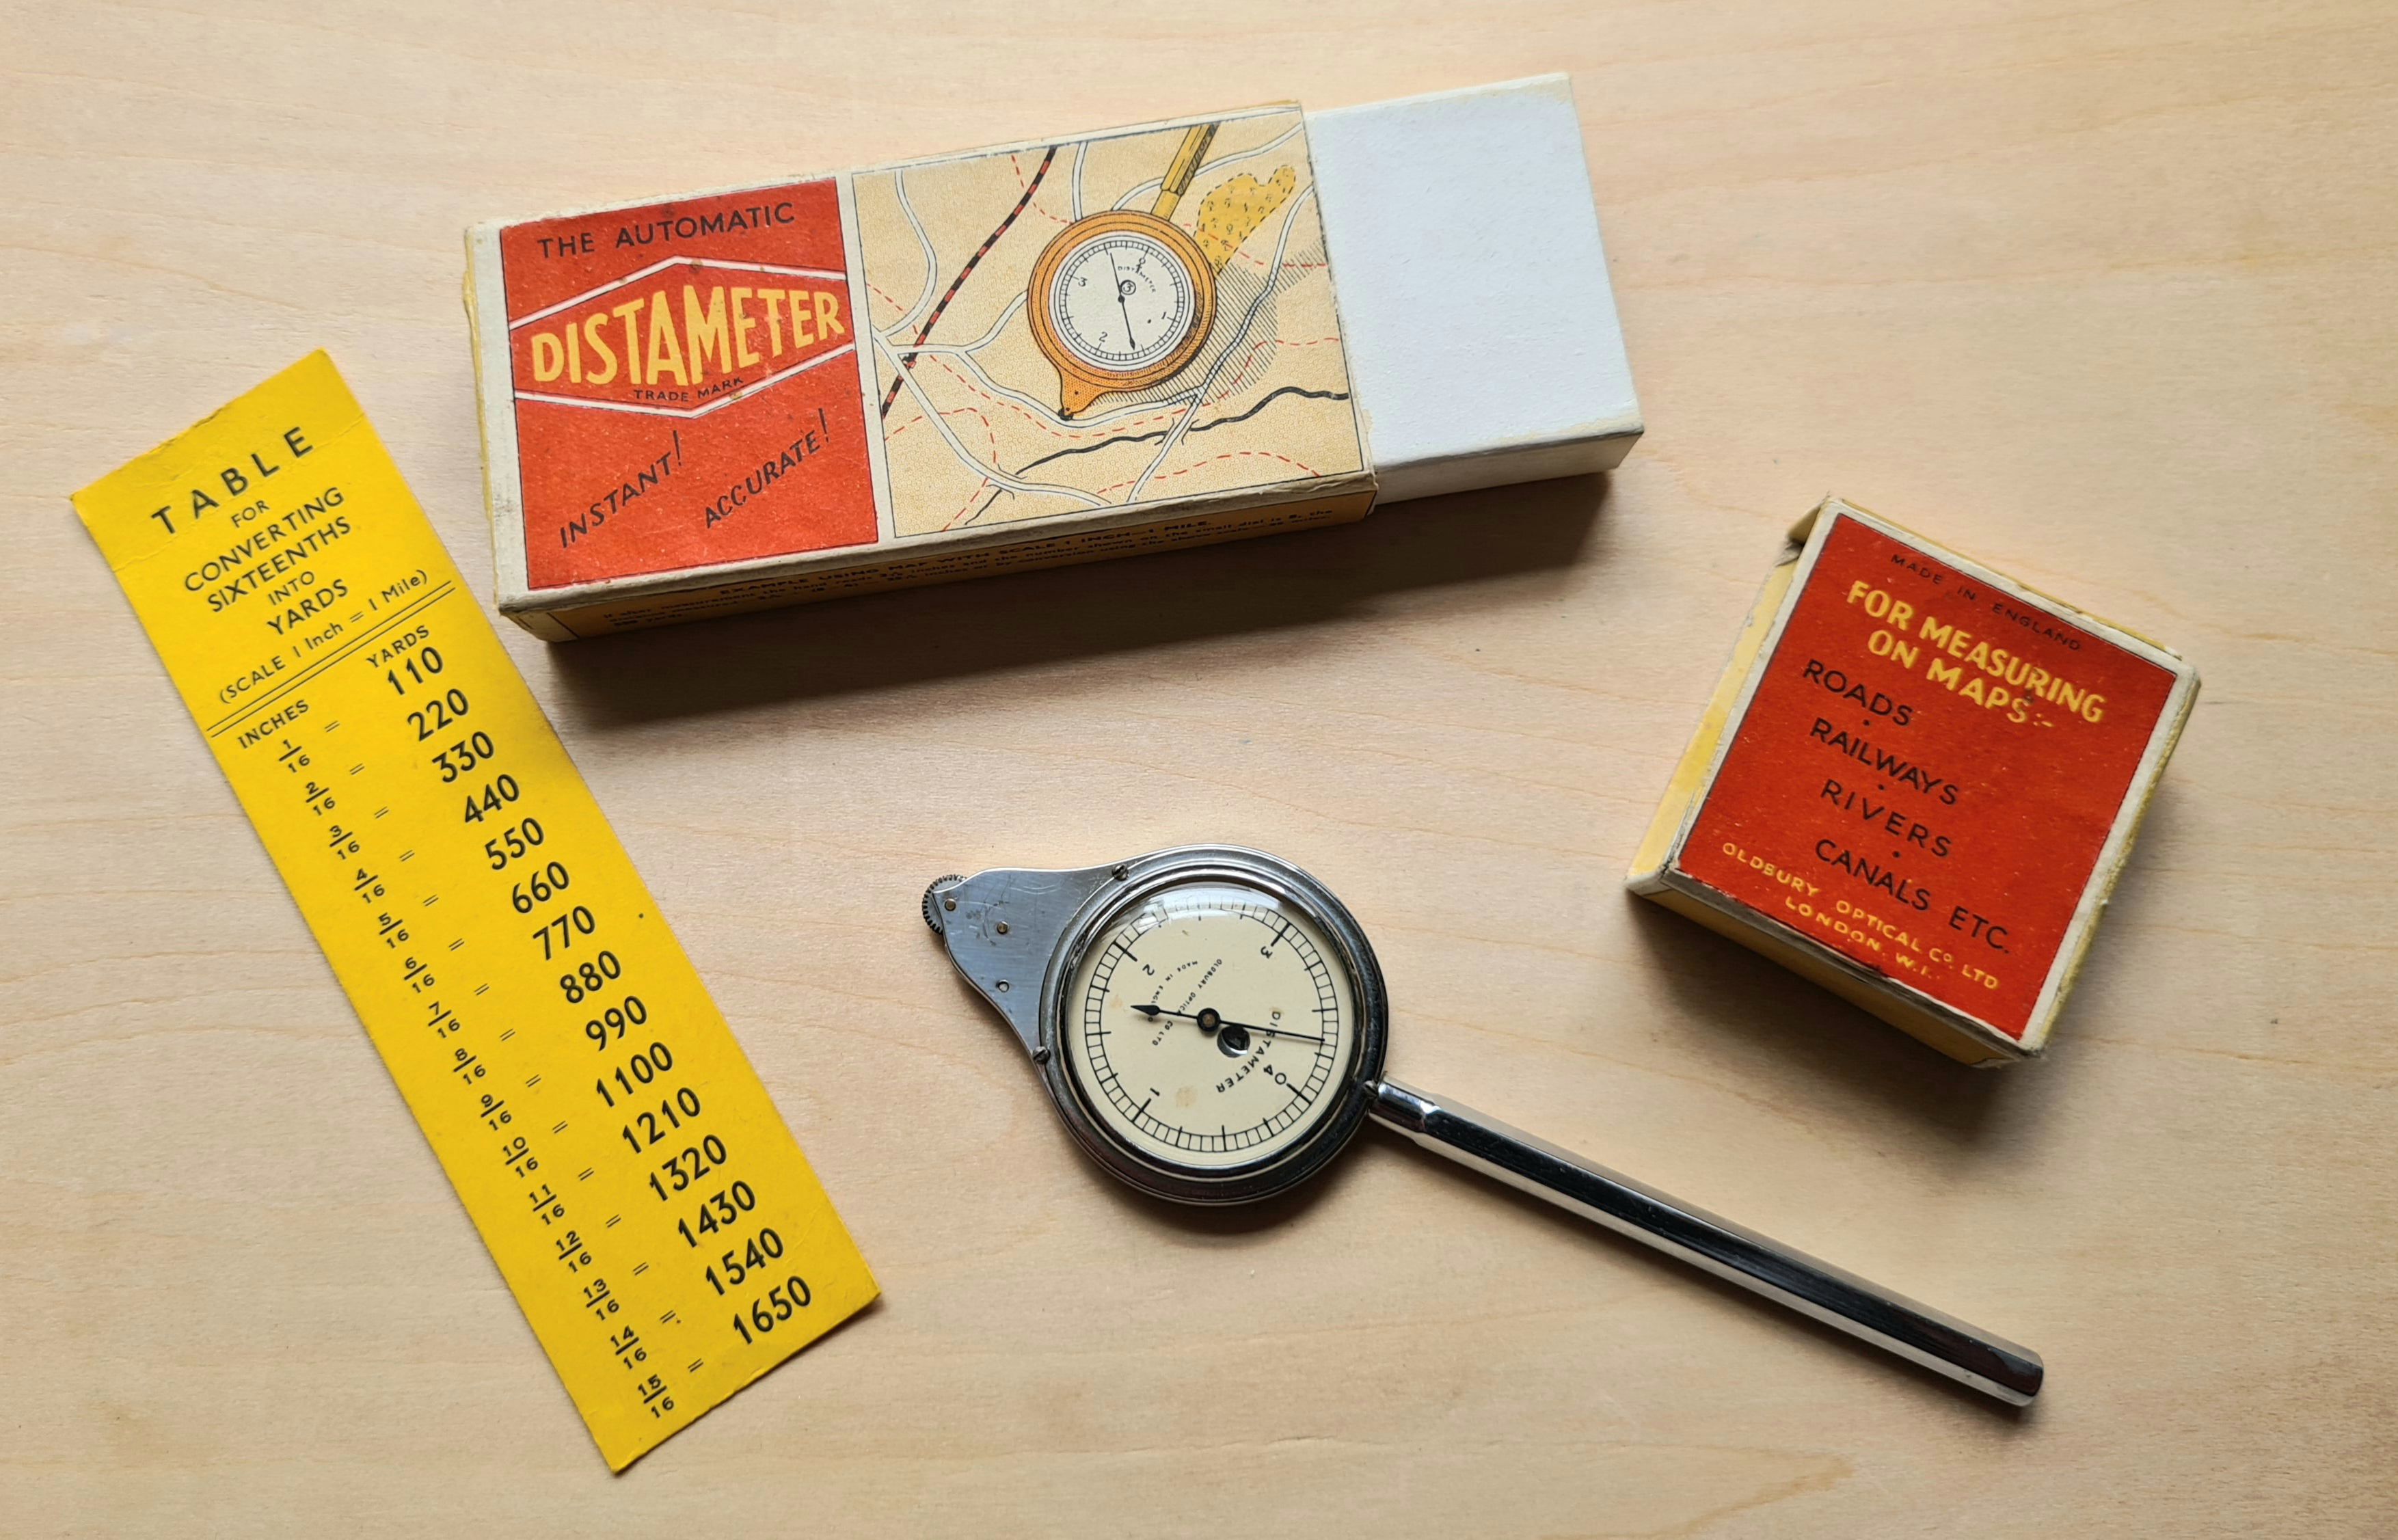 The Oldbury Optical Distamter came in a card box with slip lid and a small conversion table